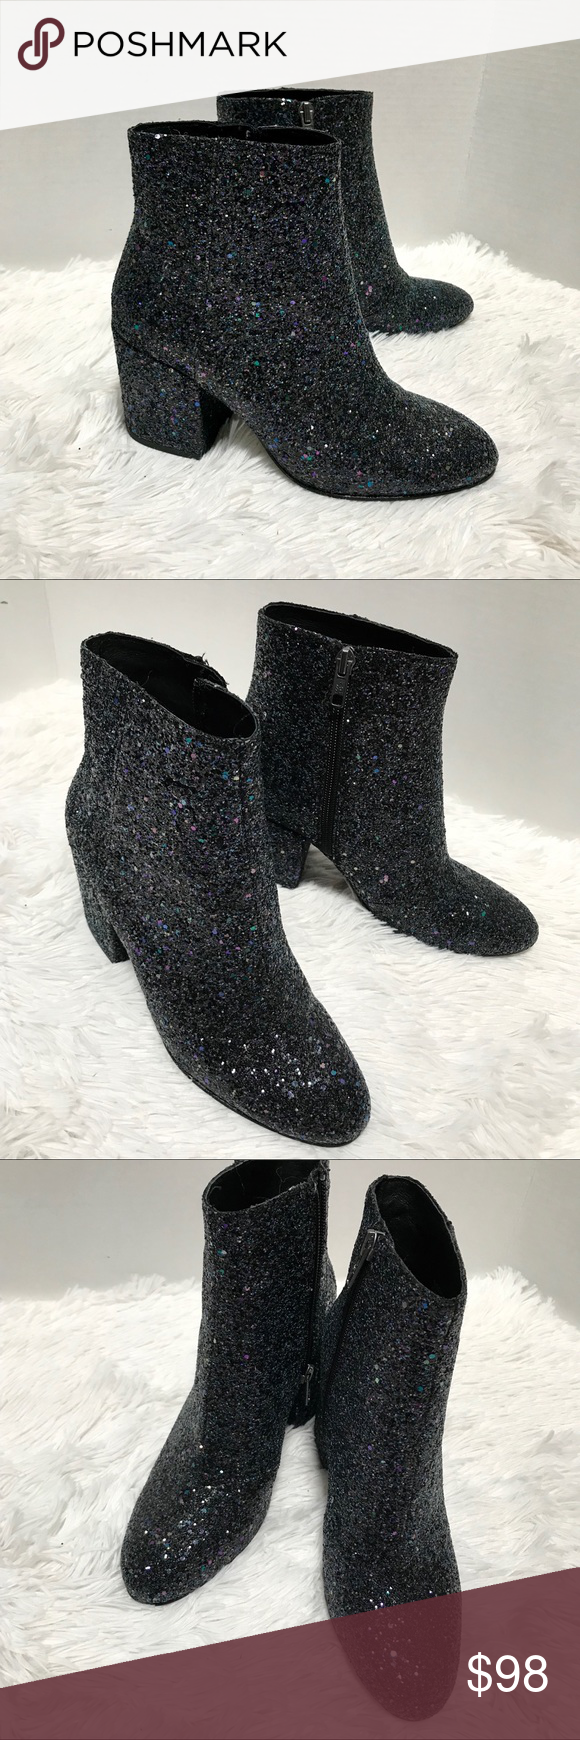 8dc778e1cf71 NEW - ASH Egoiste midnight glitter booties NEW without box ASH Midnight  booties Size 37 US 7 They are covered with chunky glitter all around